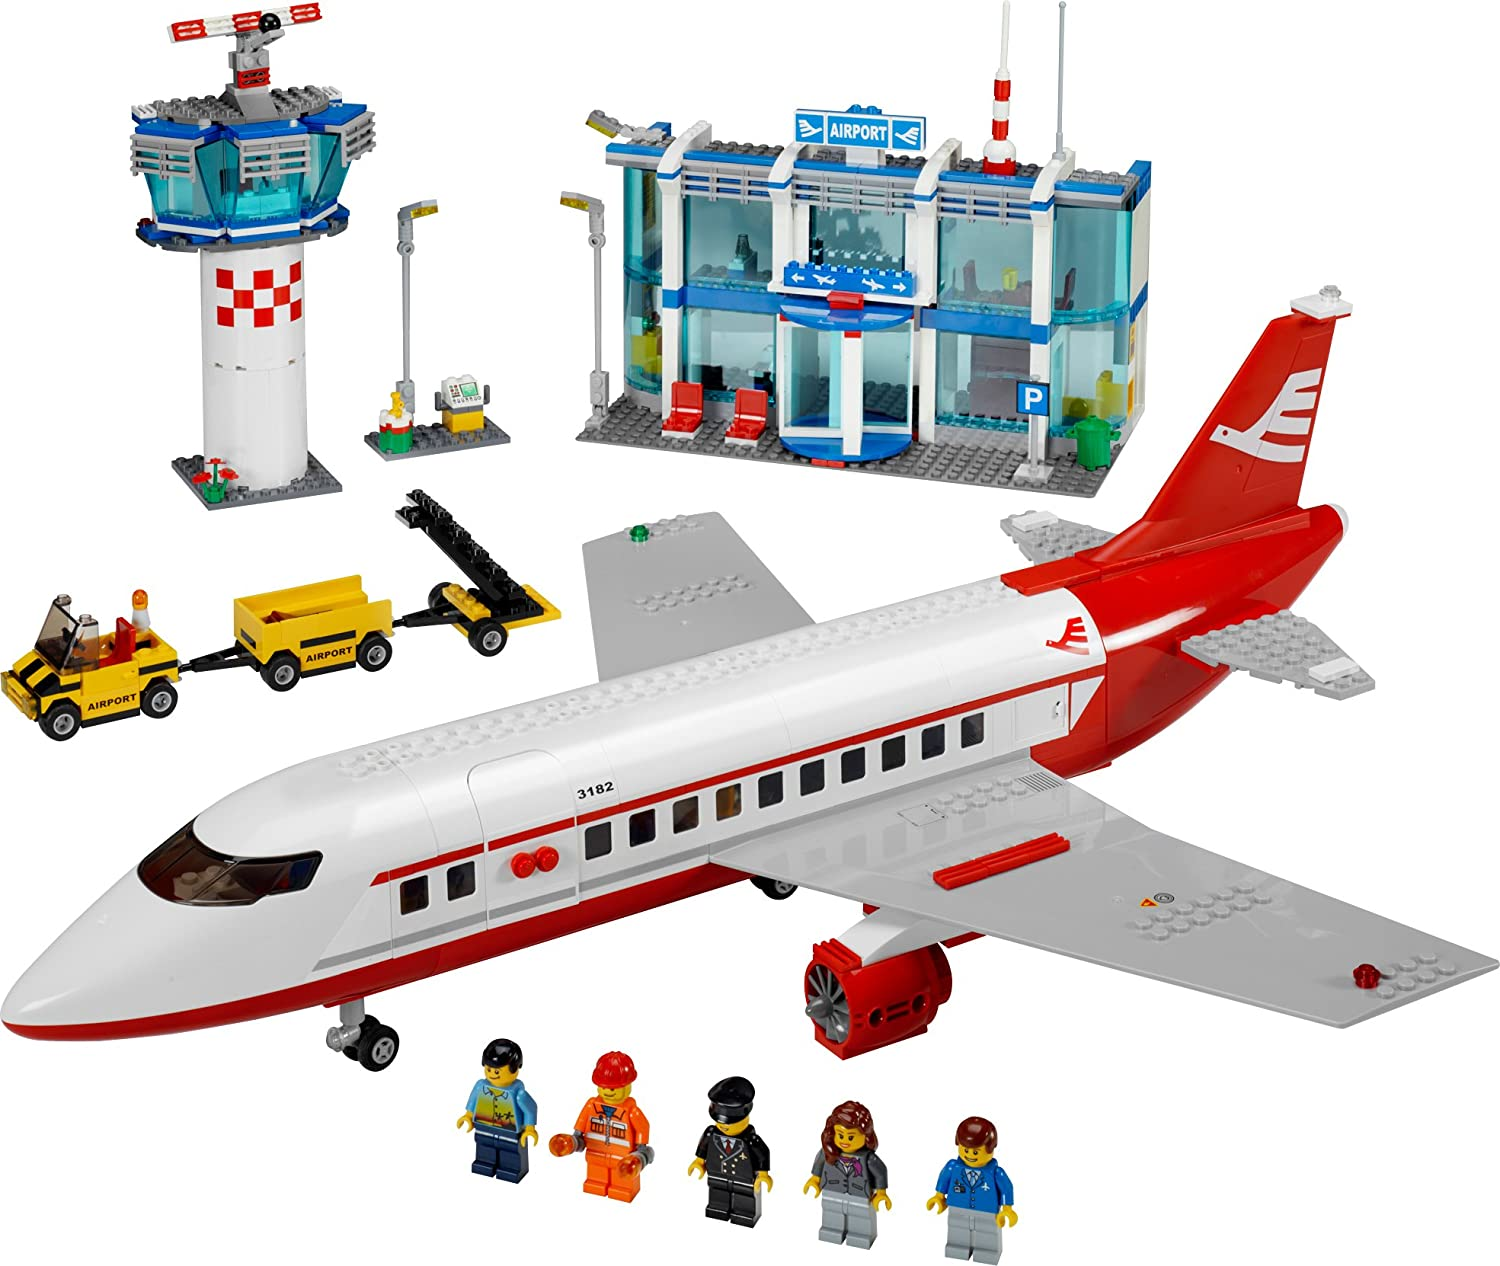 Amazoncom Lego City Airport 3182 Toys  Games